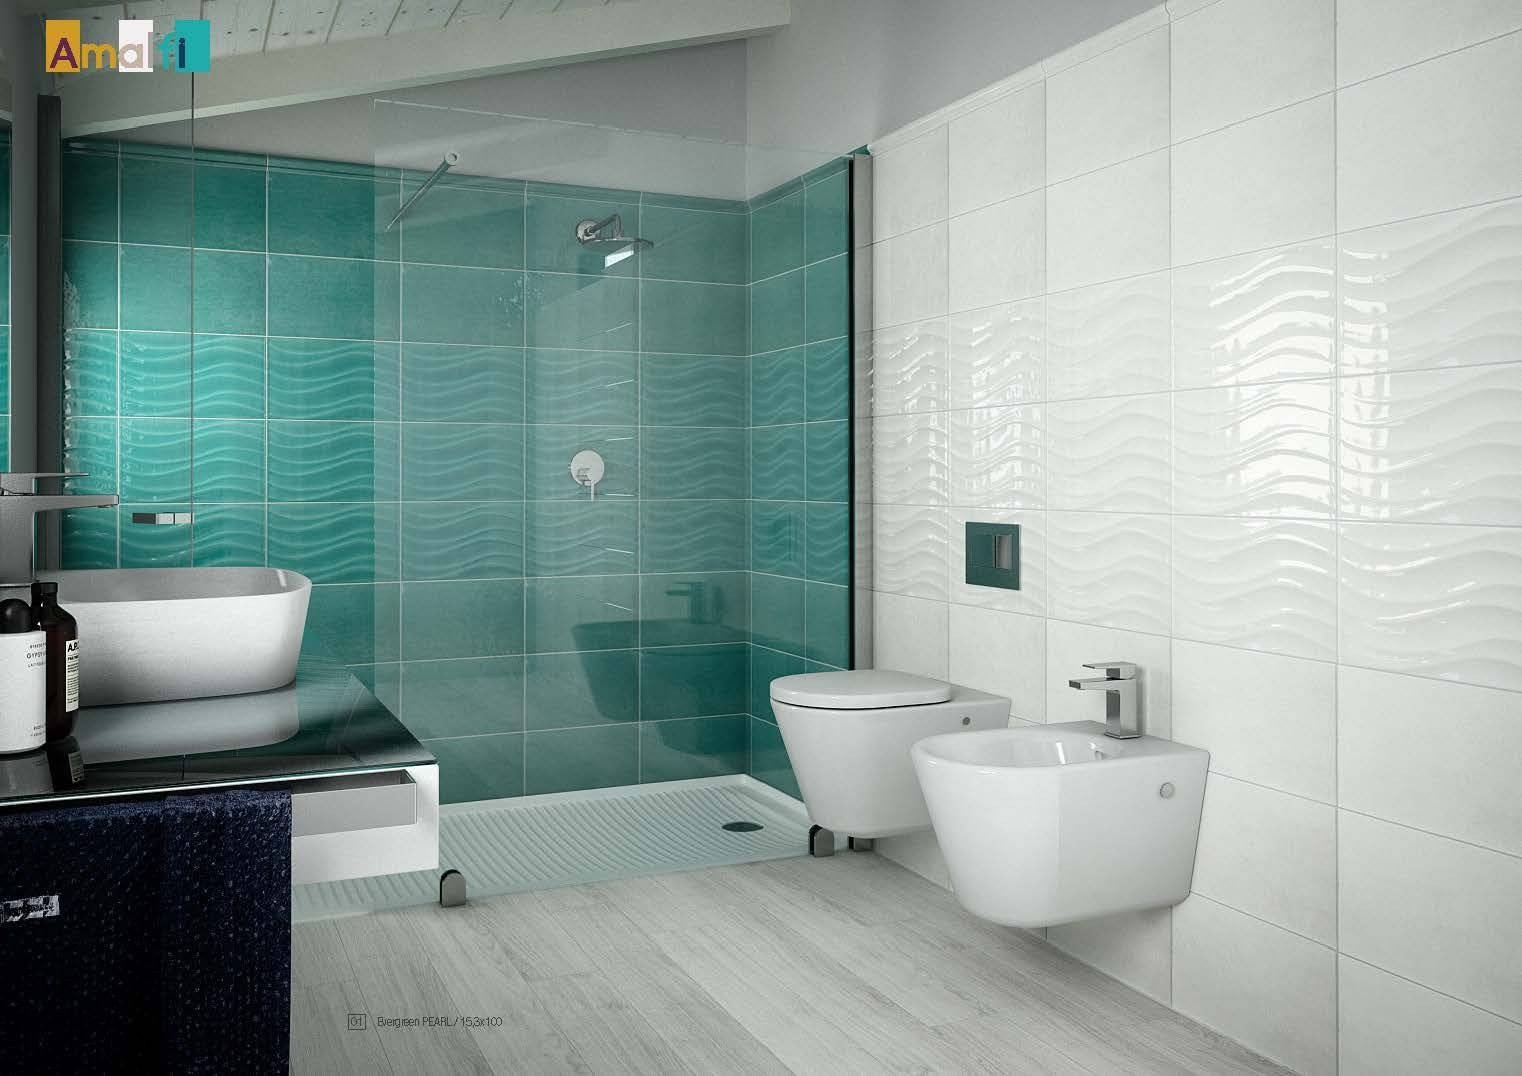 Idea Ceramica serie Amalfi Onda Acqua 2540 AM210